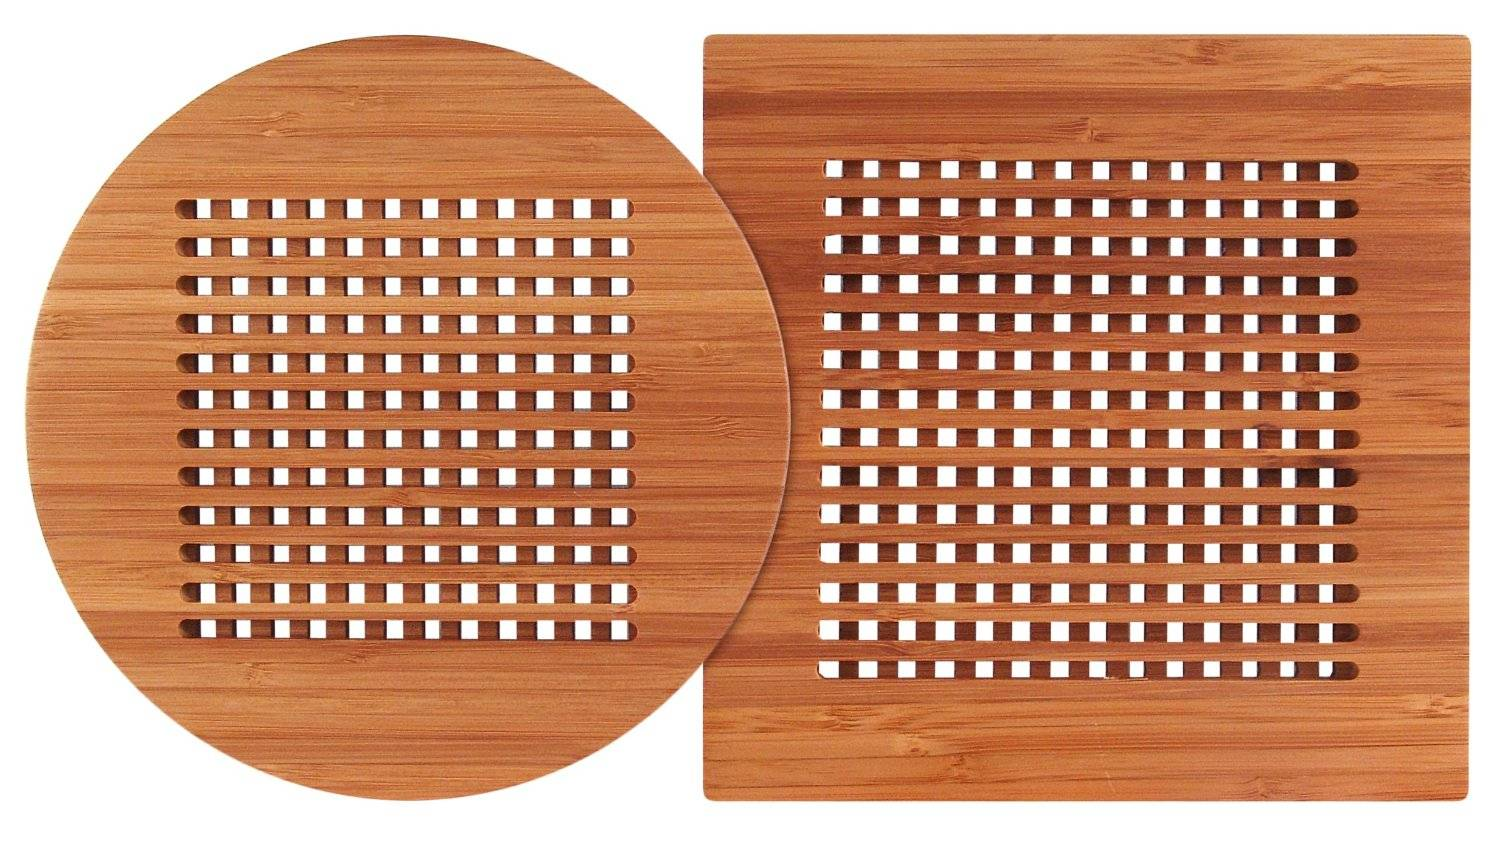 Round and Square Bamboo Wooden Heating Pot Kitchen Mug Lattice Trivets Coaster Set